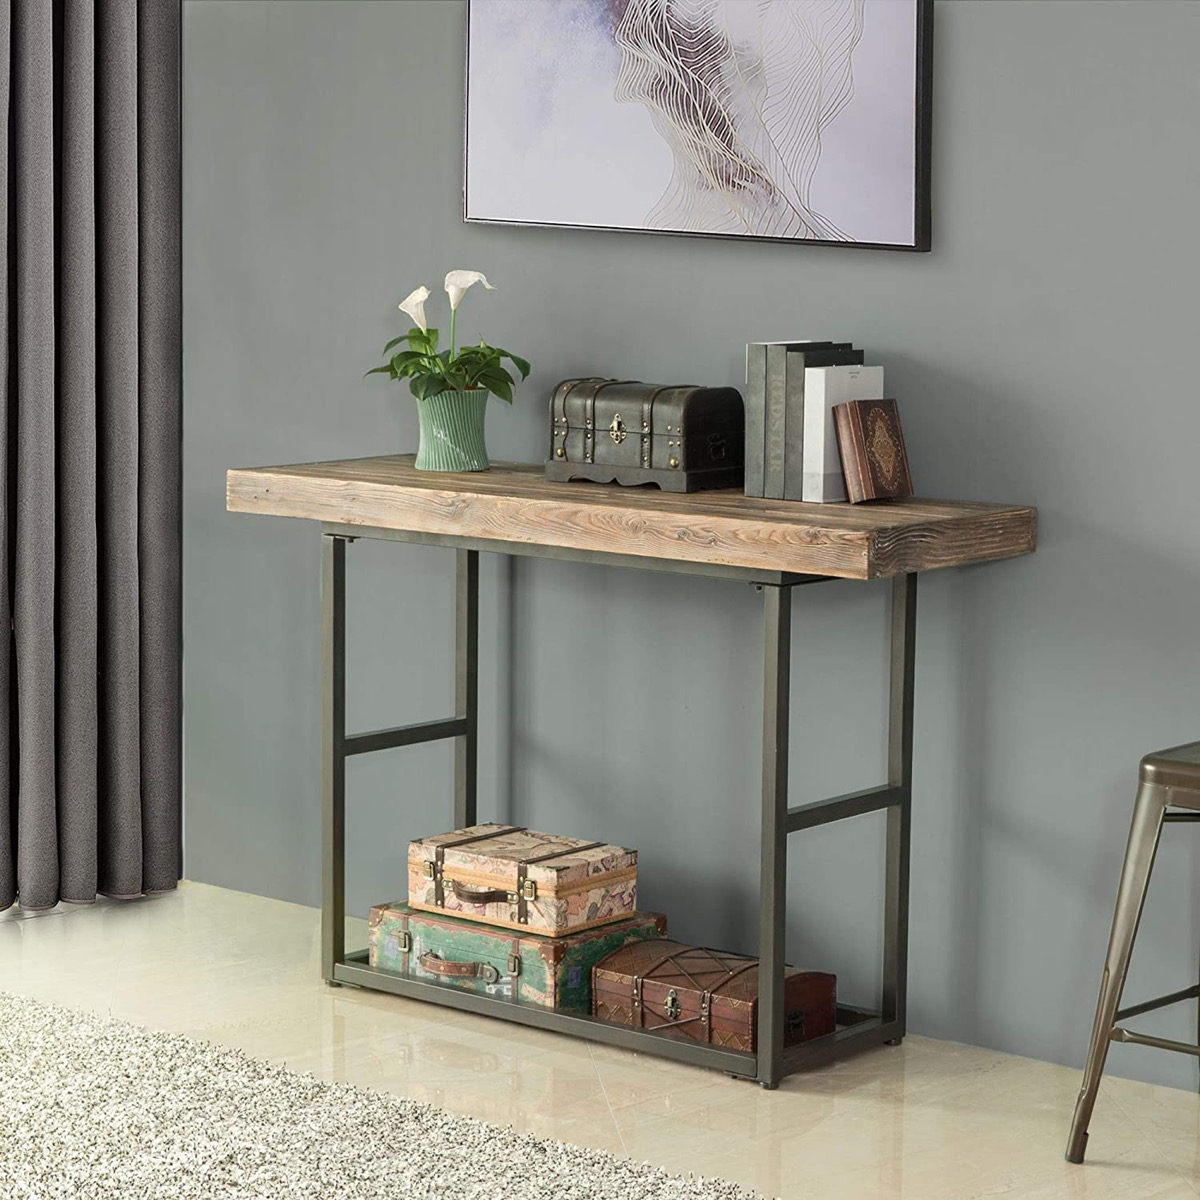 rustic farmhouse table with accessories on top against green wall